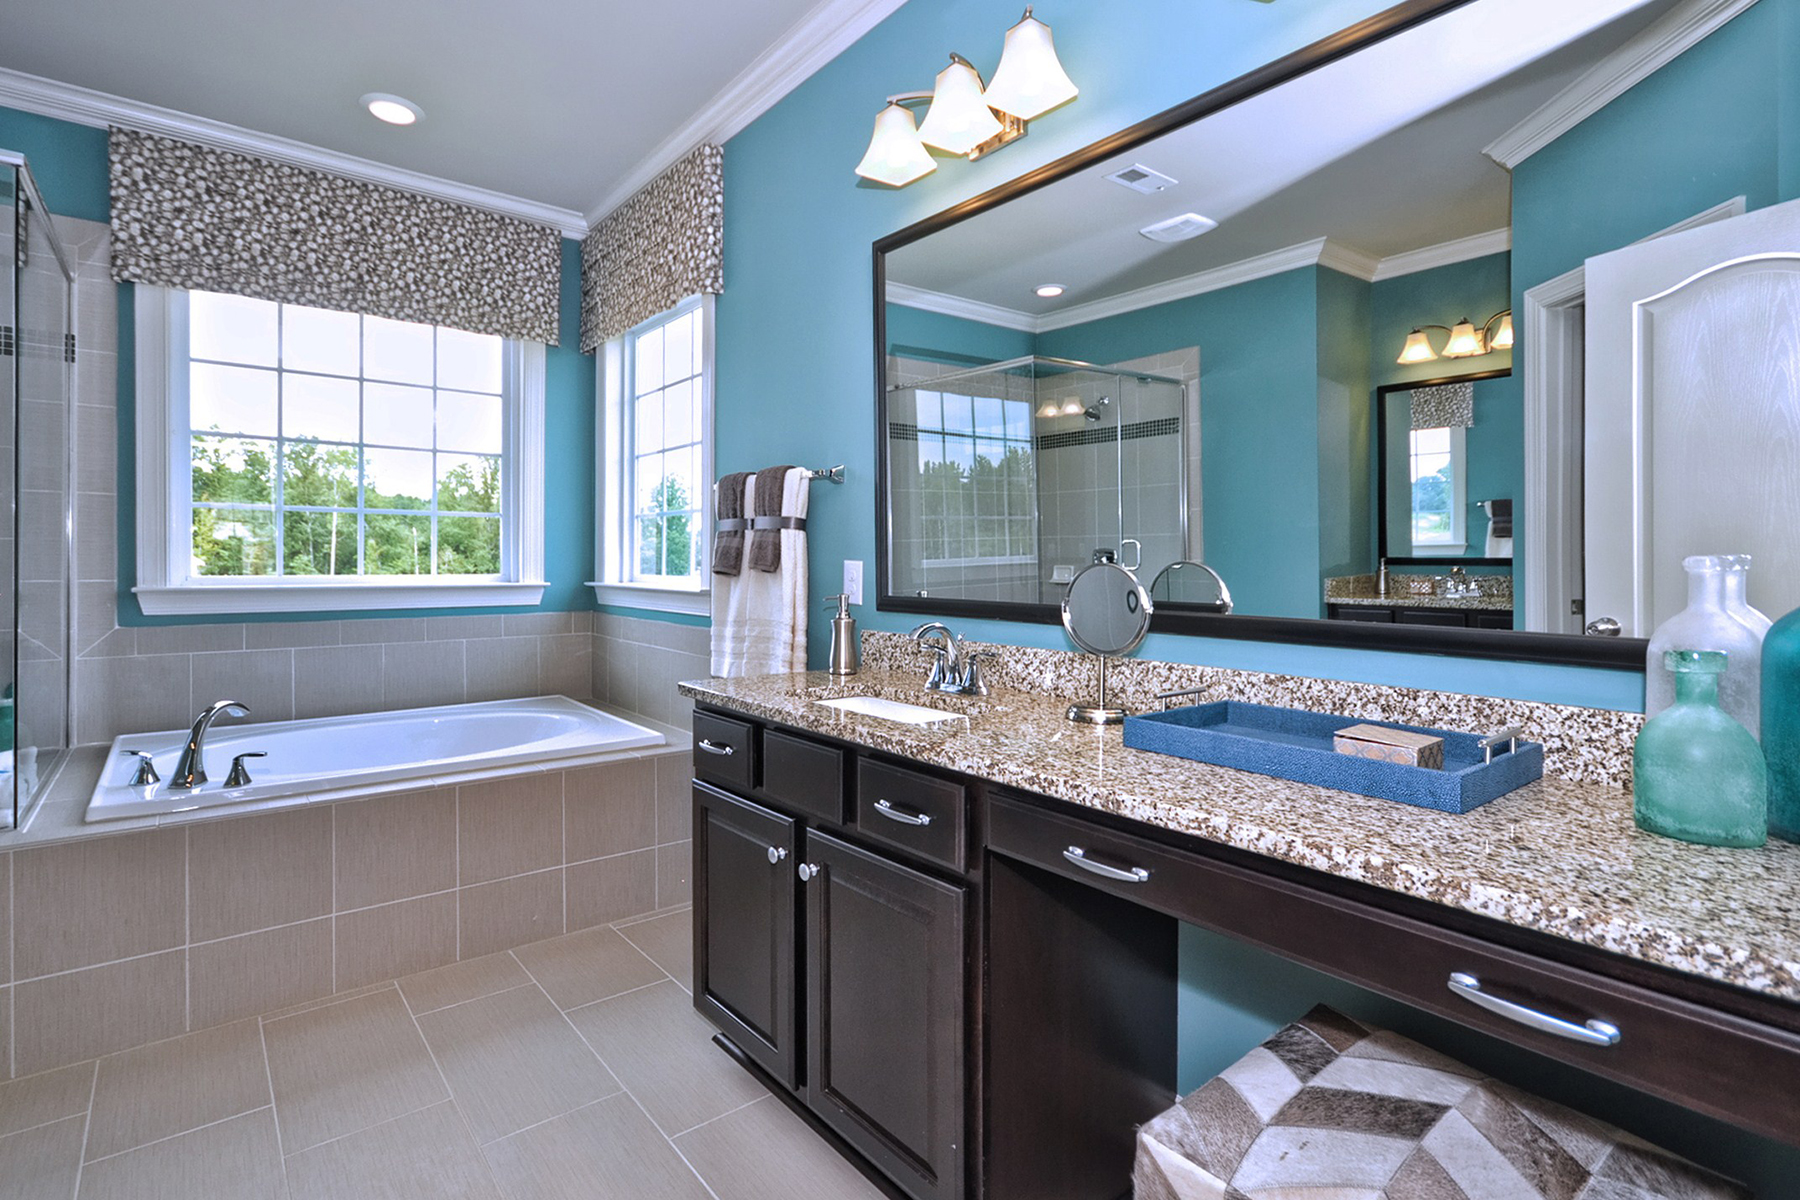 New Homes in Concord - The Hanley (Plan) - M/I Homes